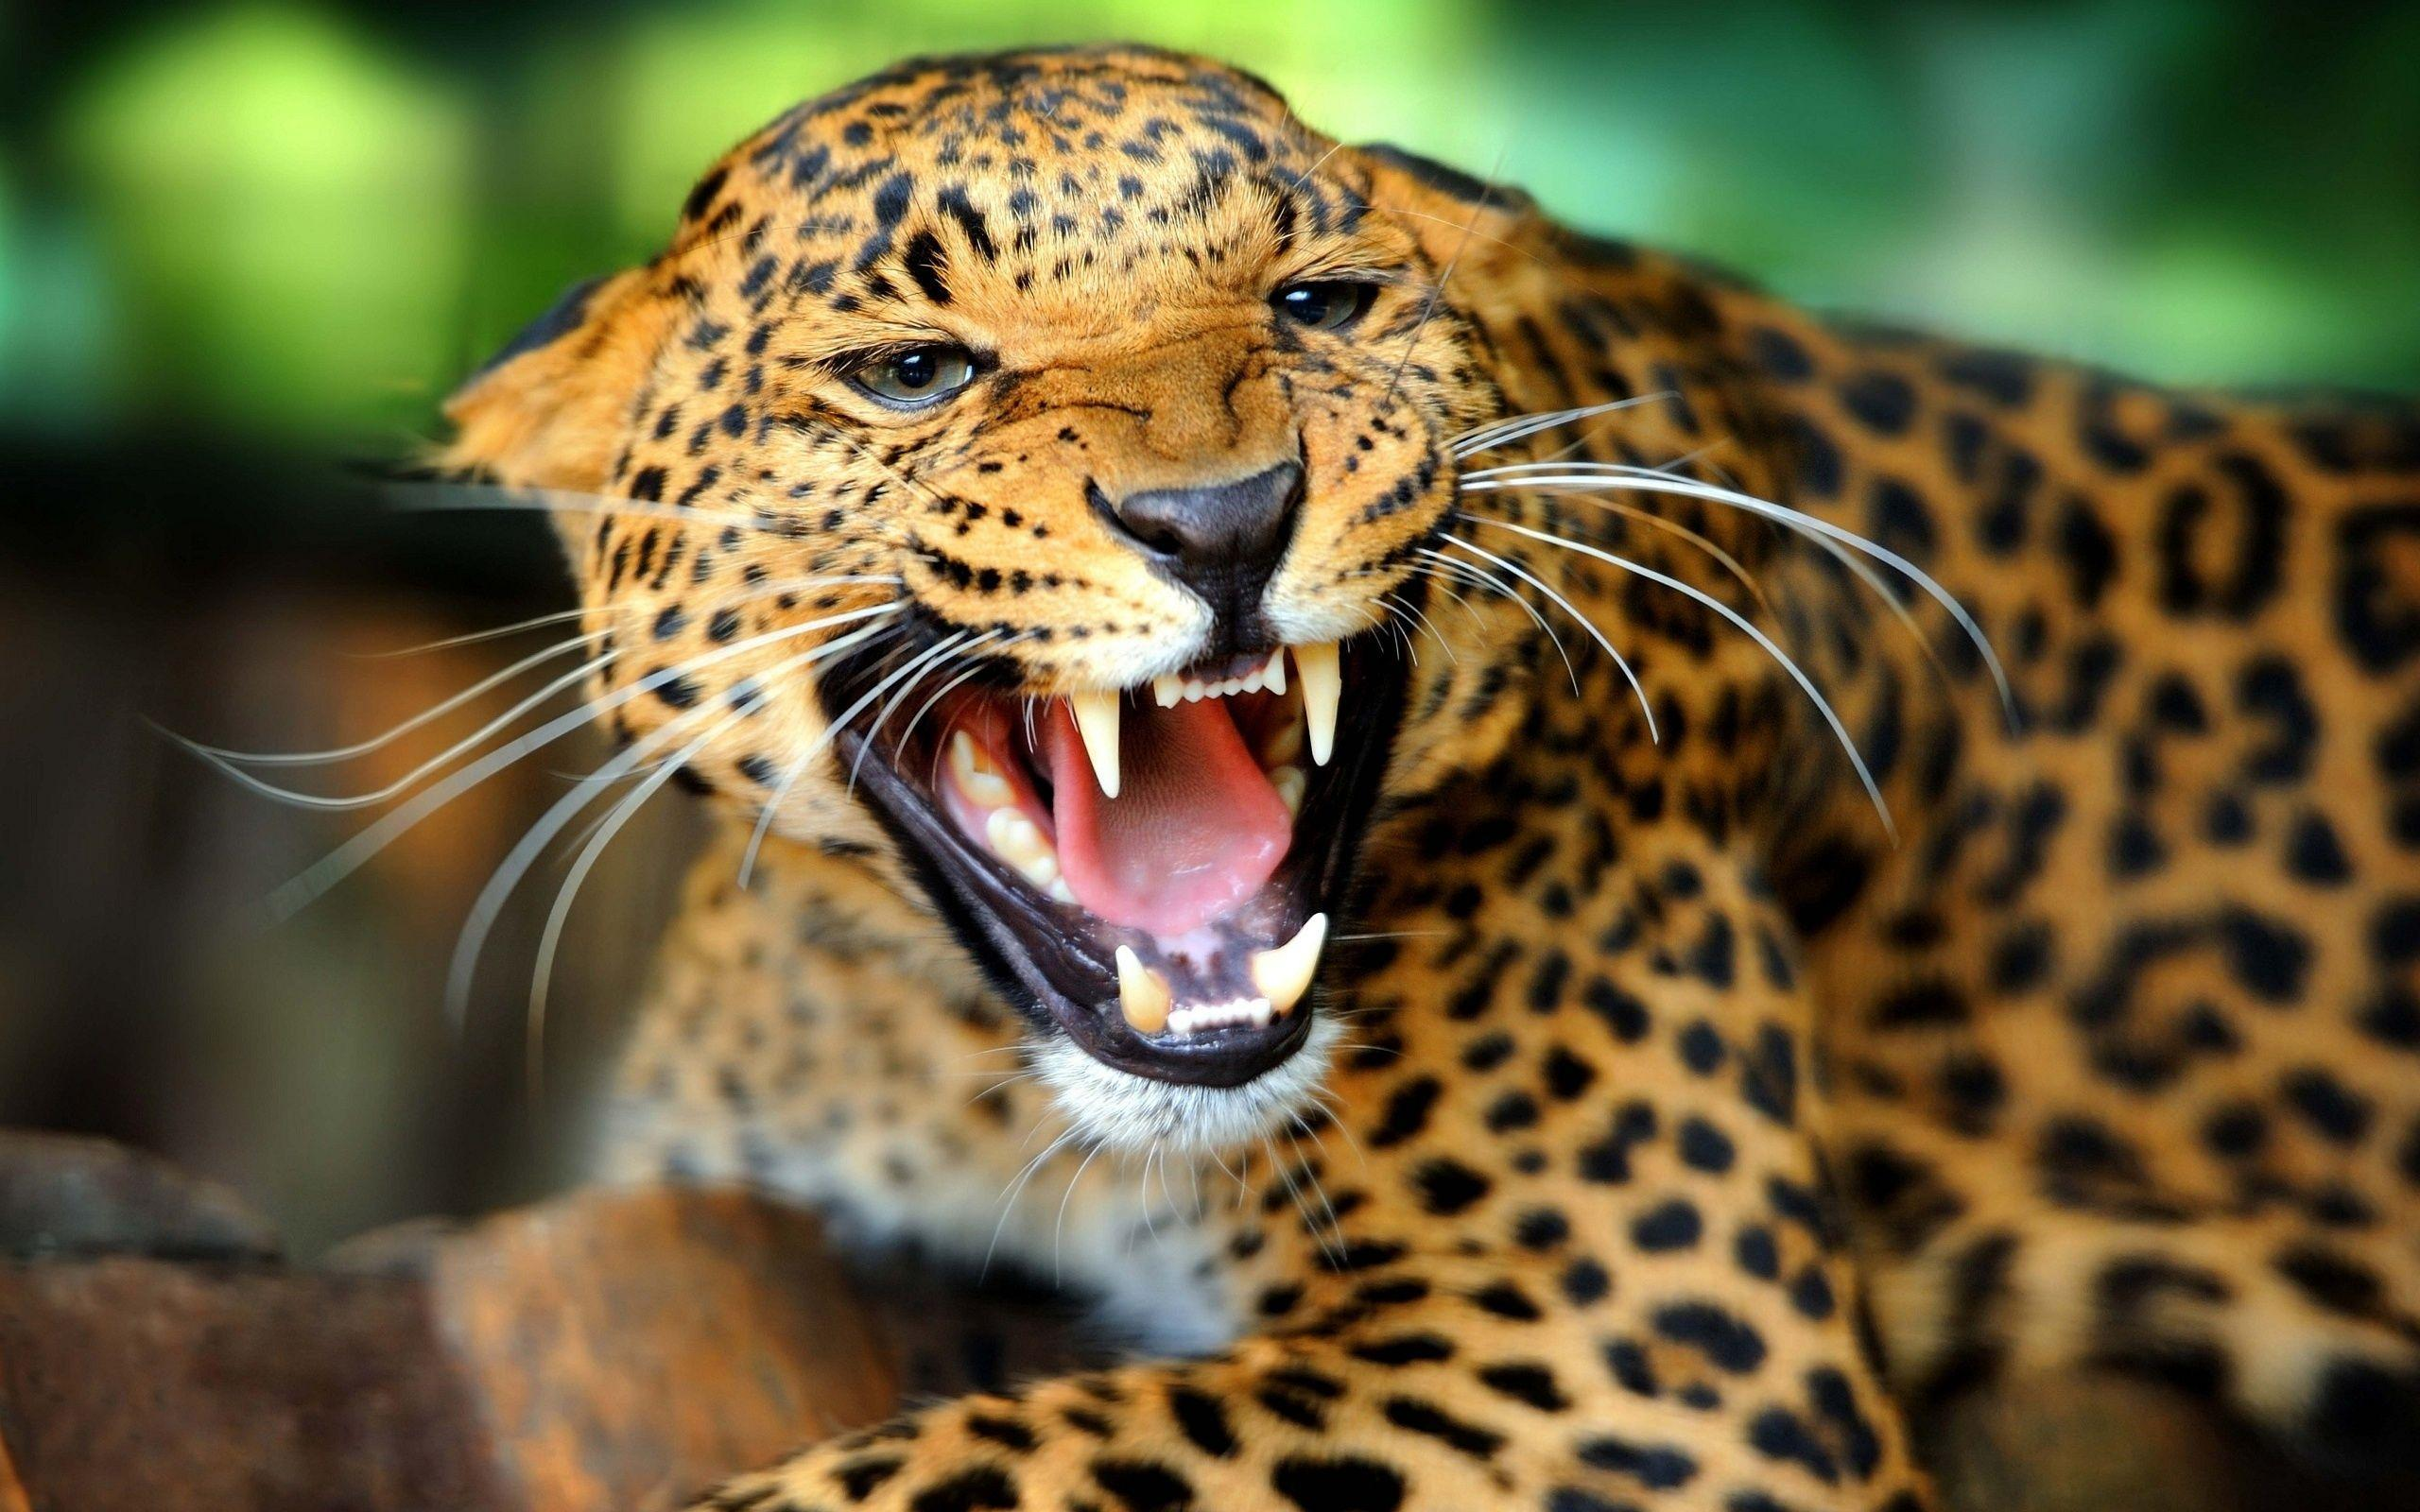 HD Jaguar Wallpapers and Photos | HD Animals Wallpapers